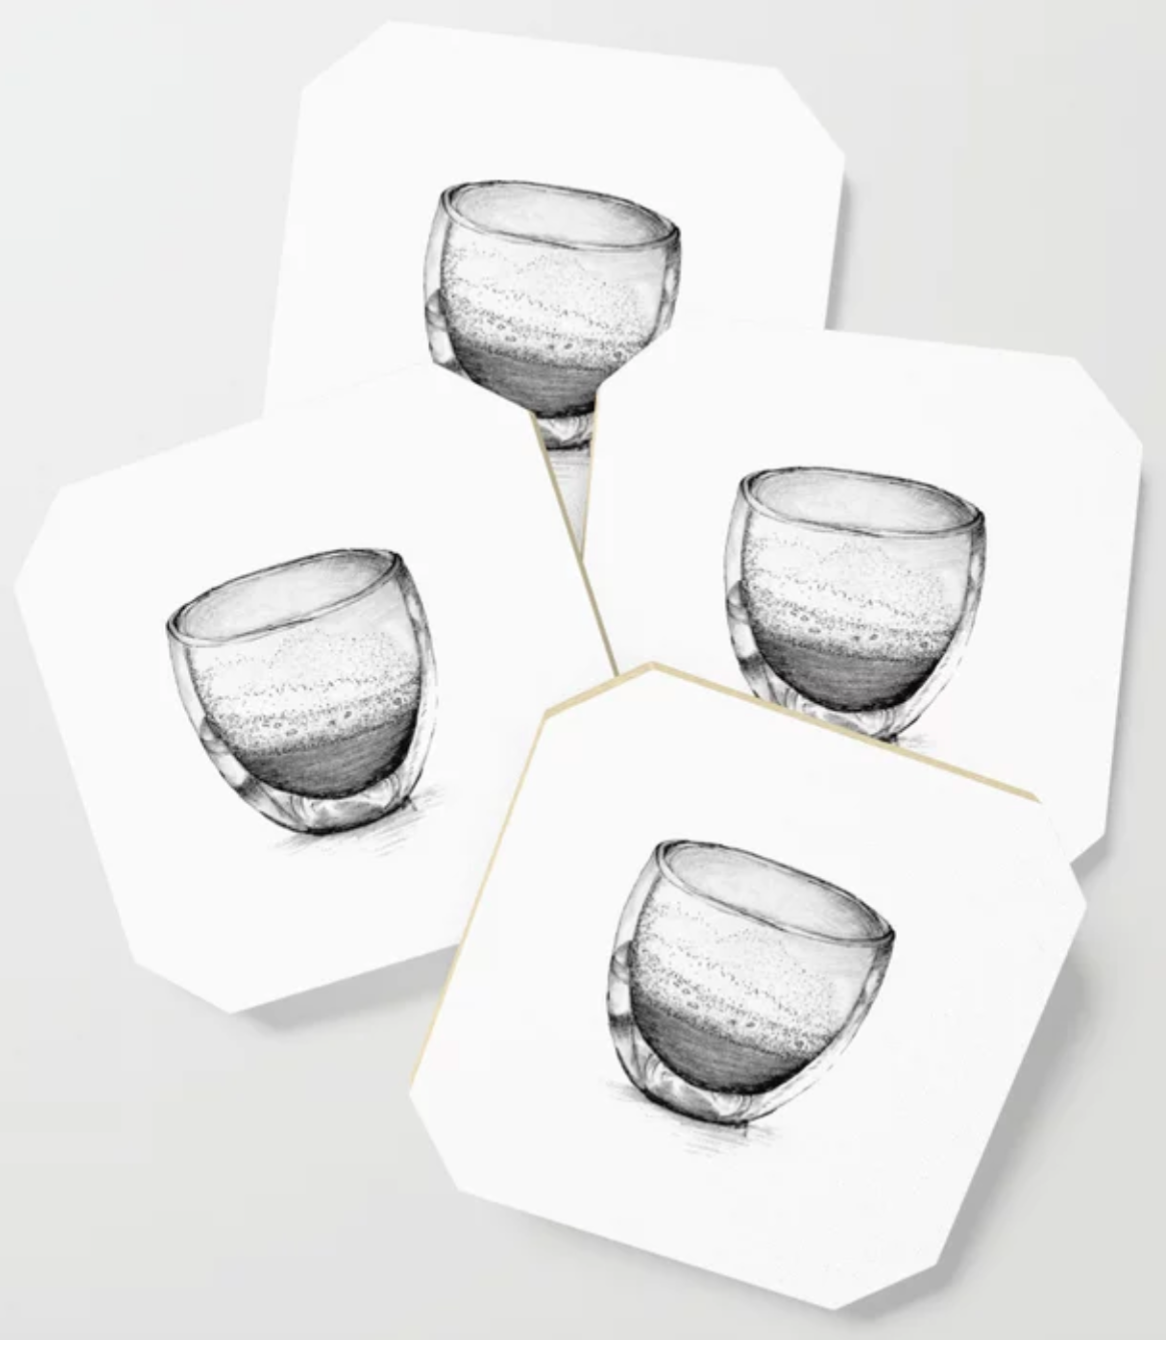 You are made for a purpose | Coffee glass illustration Coaster